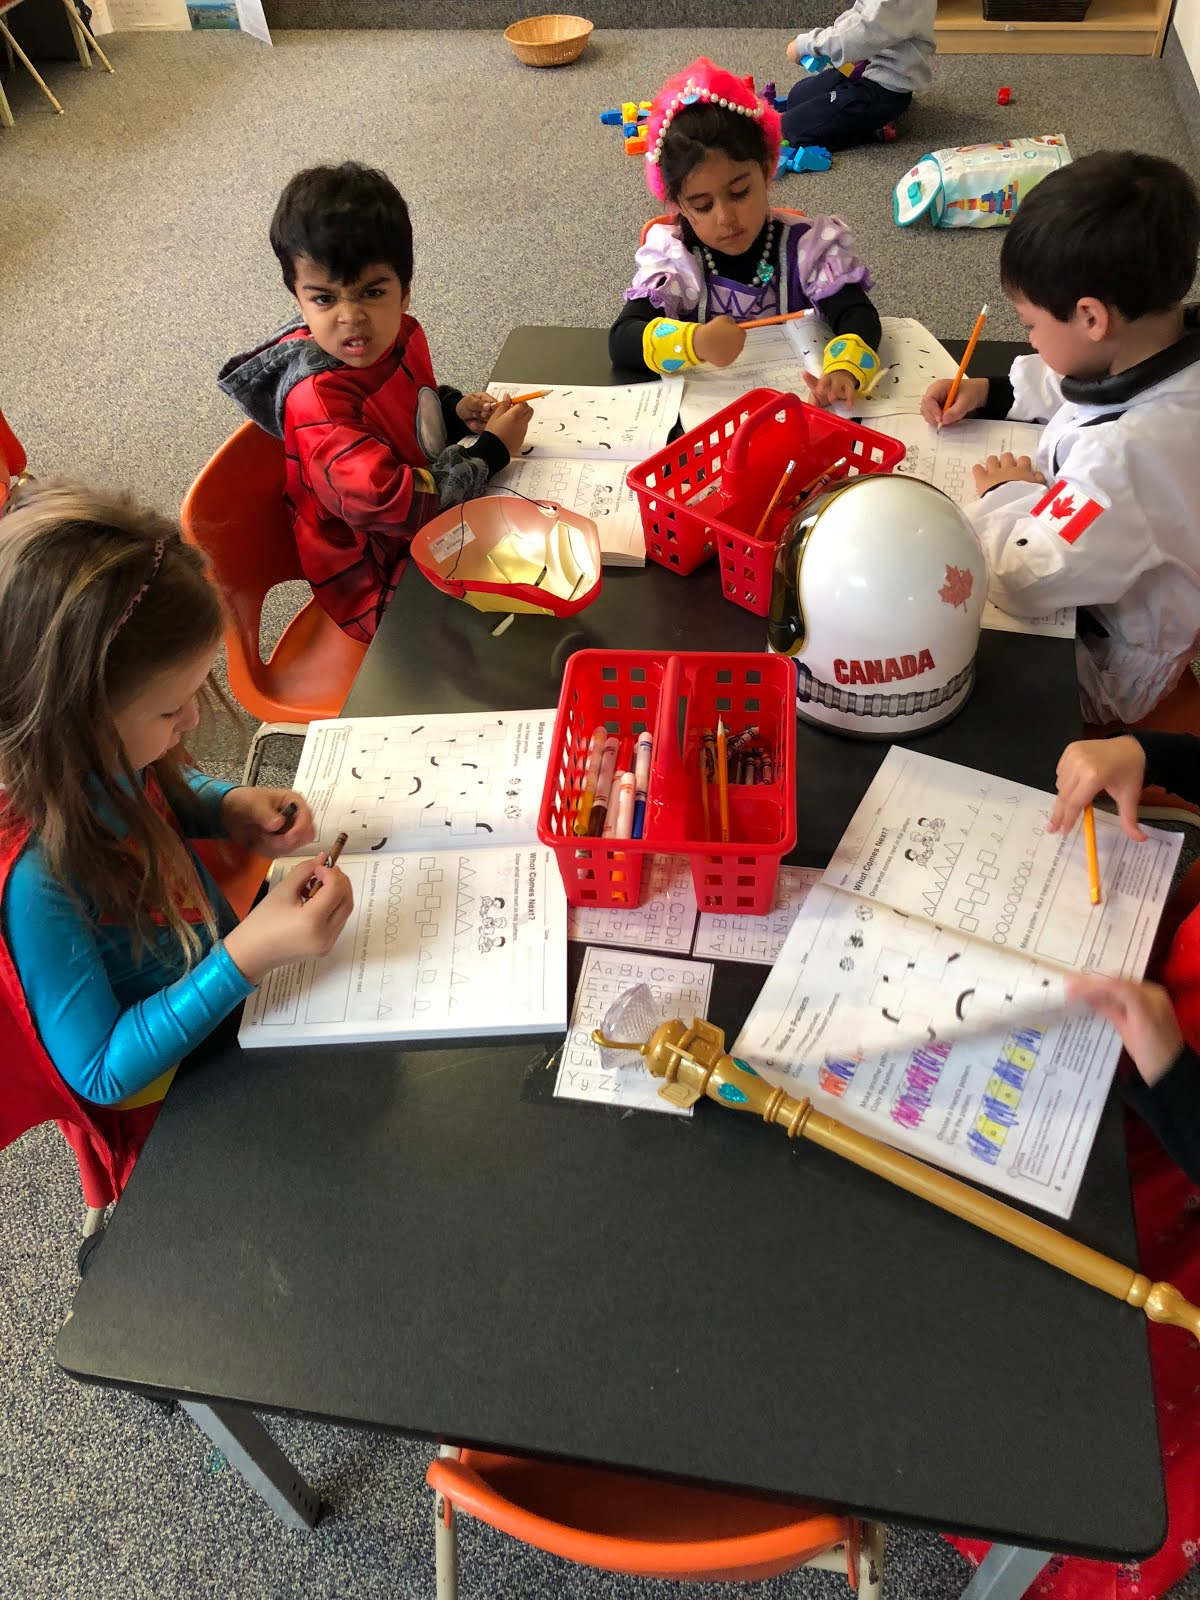 Ms Ayoub S Sk Class Tuesday October 31